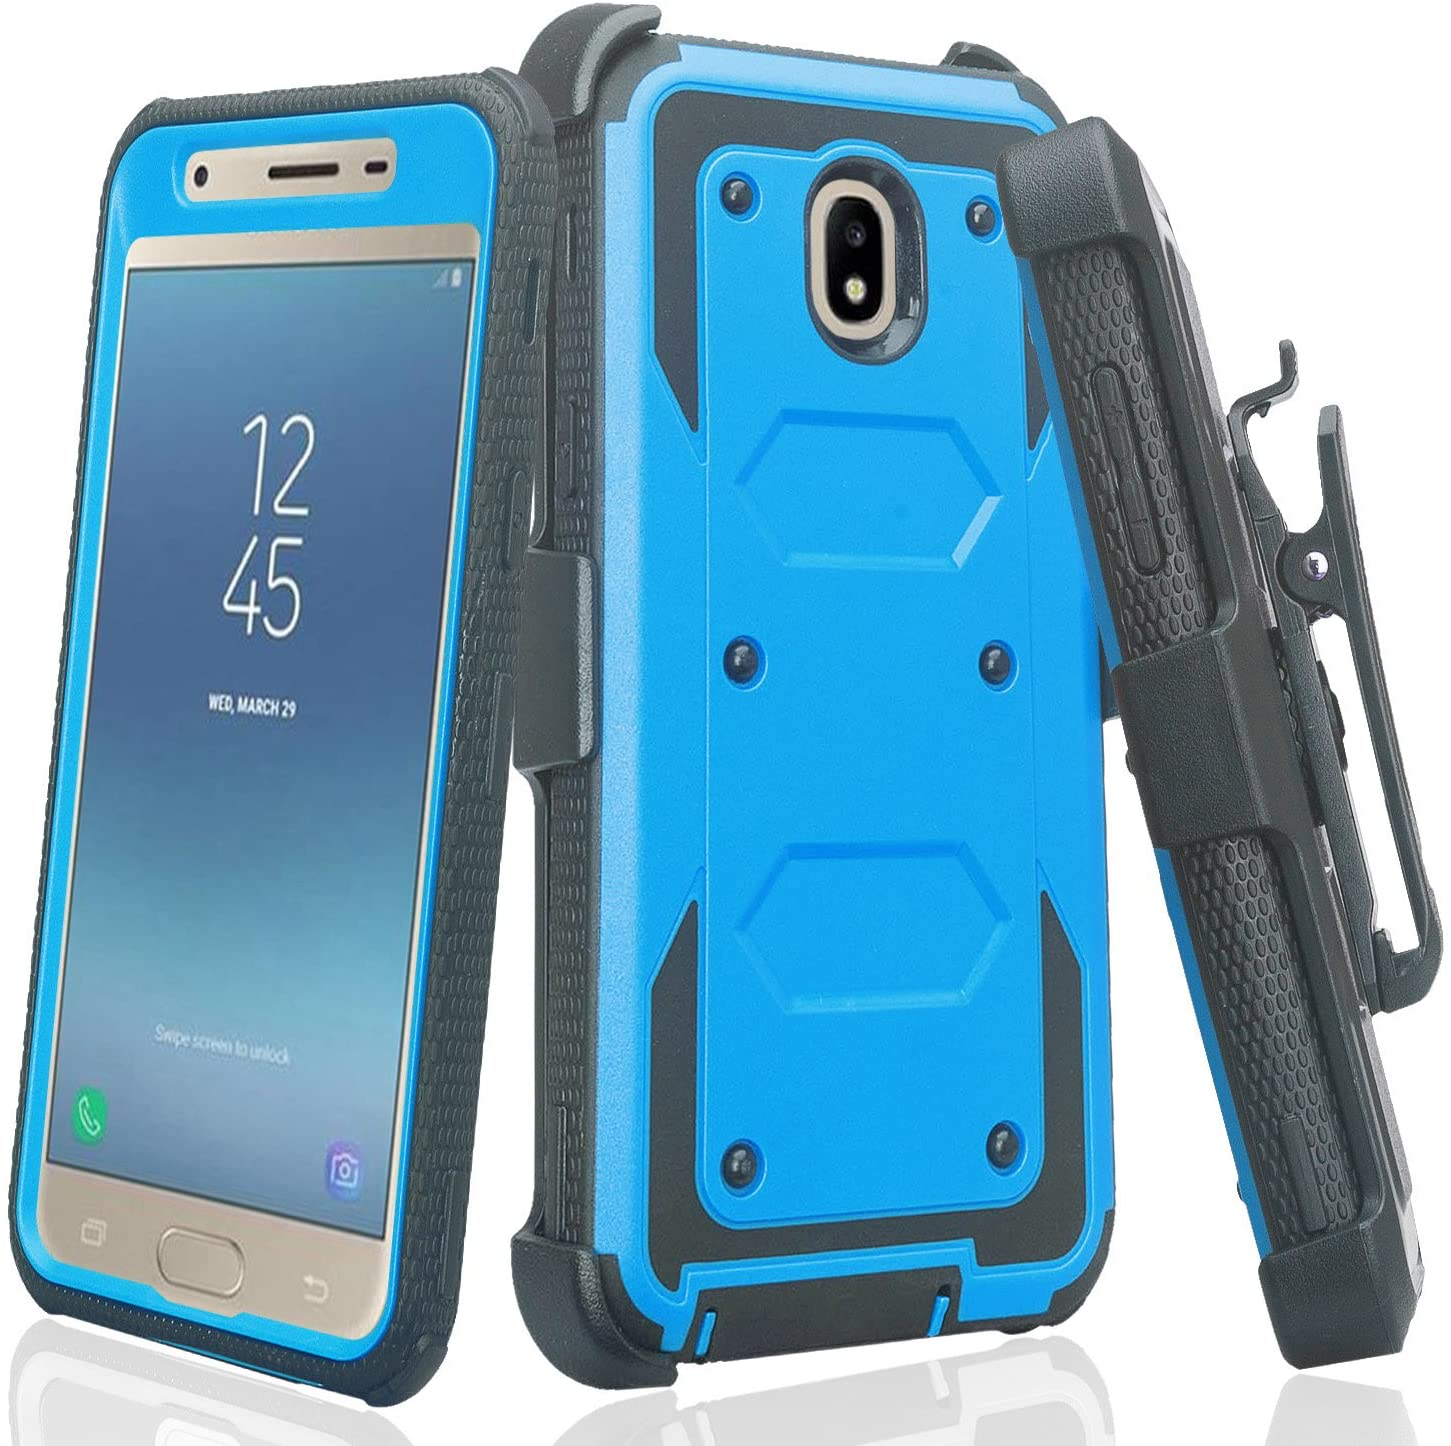 Compatible for Samsung Galaxy J3 2018 J337/Amp Prime 3 (2018)/Galaxy Express Prime 3 (2018)/Galaxy J3 Achieve/J3 Star Case, Shockproof Case with Belt Clip Holster & Built-in Screen Protector (Blue)